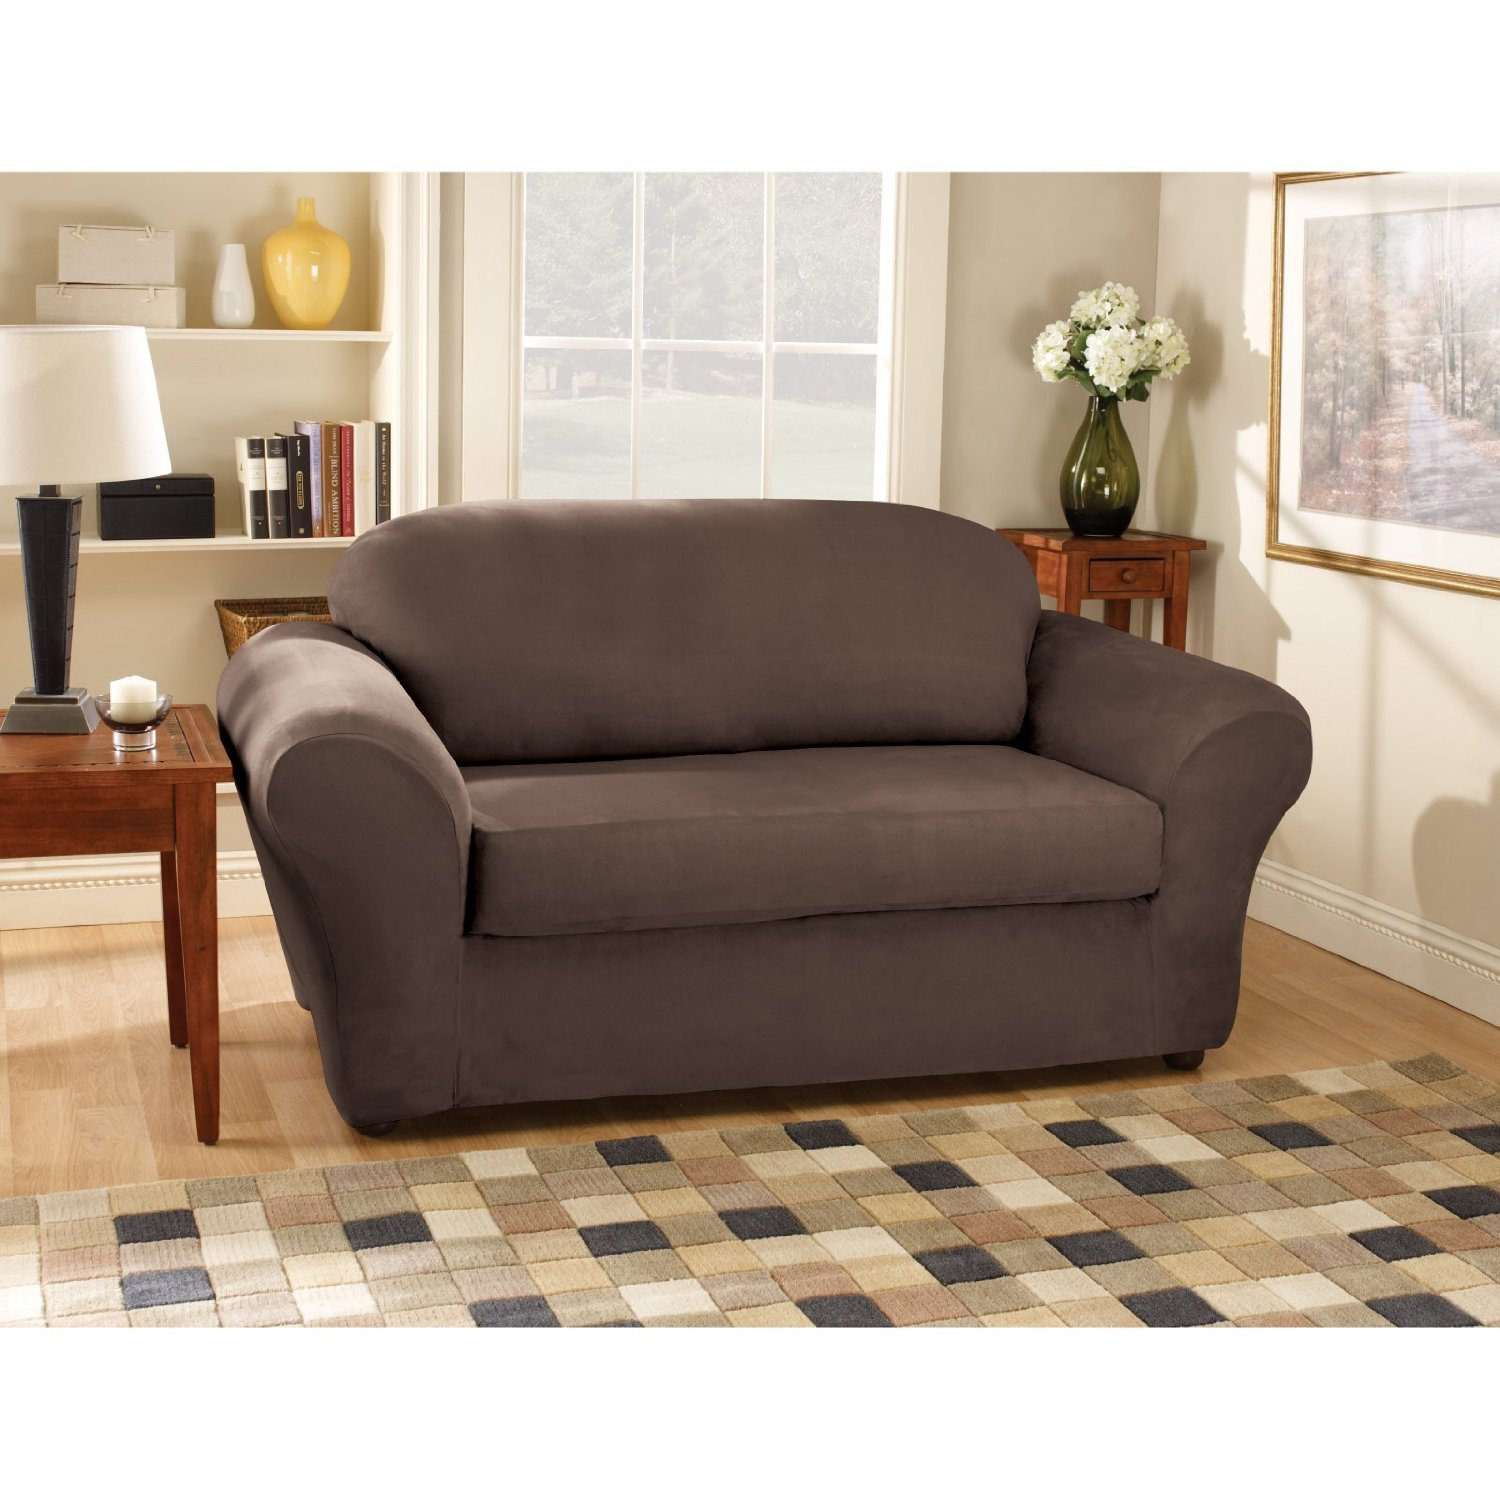 sofa slipcovers $ 33 96 large extra large sofa slipcovers